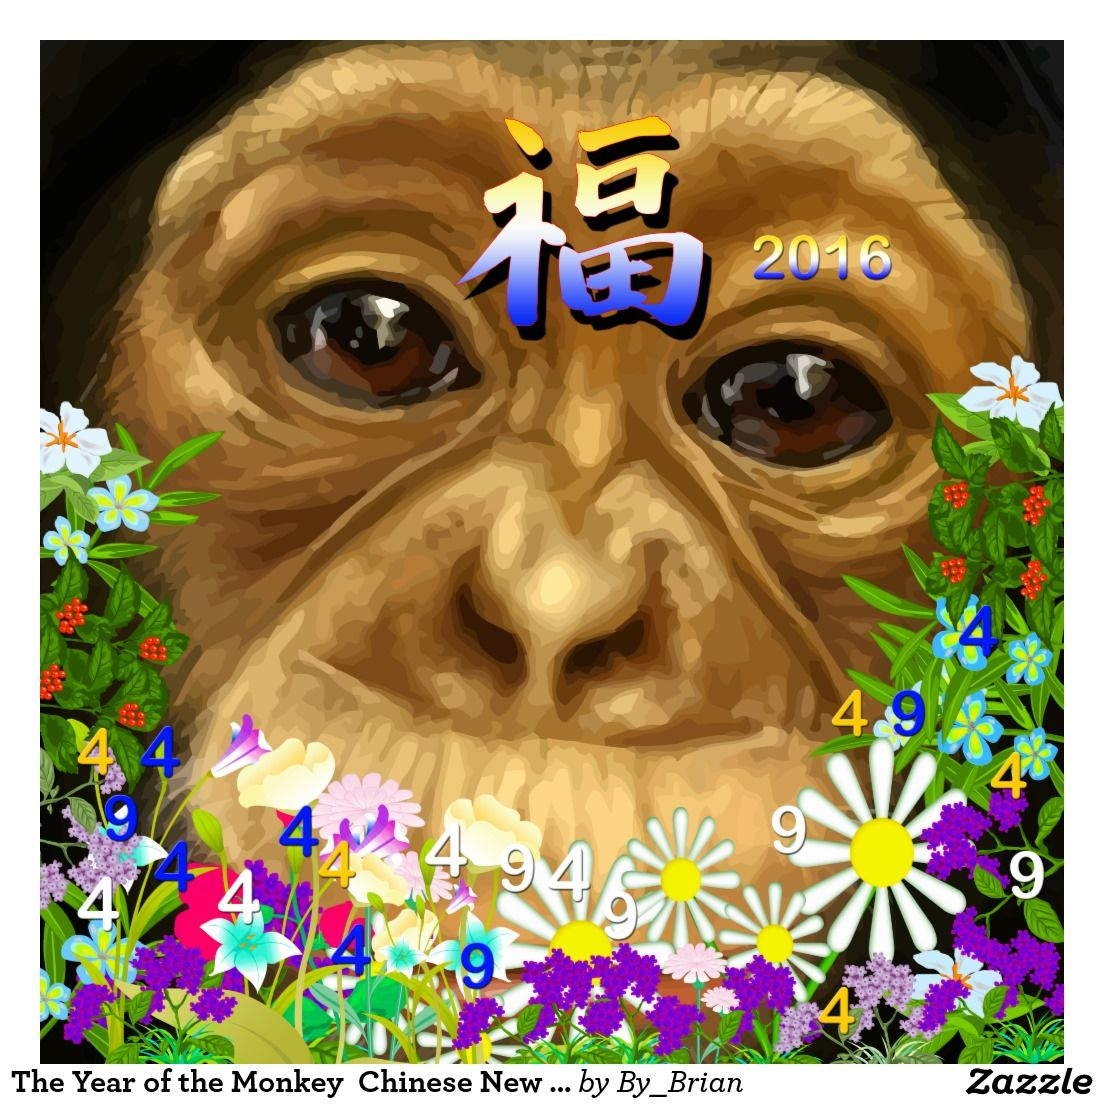 the_year_of_the_monkey_chinese_new_year_2016_poster-r8fd5f9c9776d413e9c12d9d6245bf9be_is5s3_8byvr_1024.jpg (1104×1104)